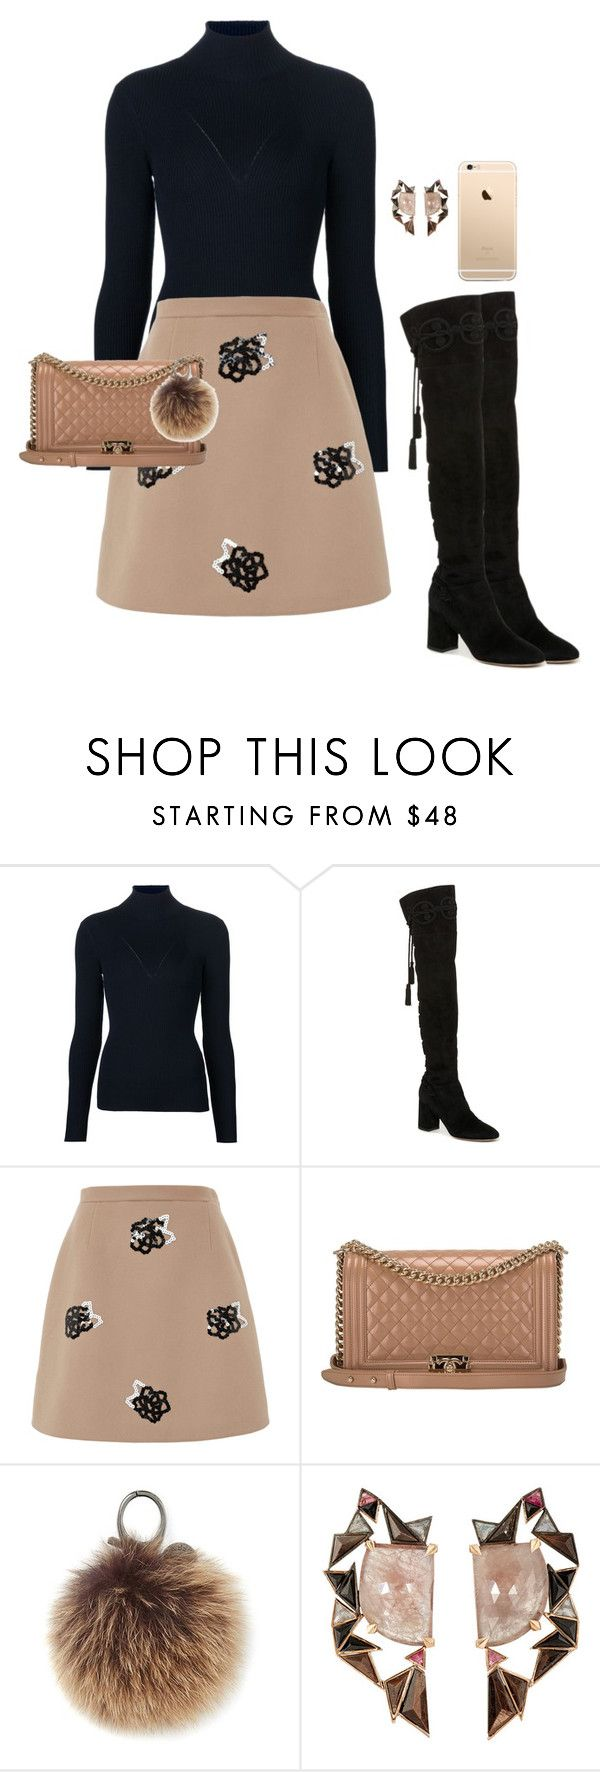 """Untitled #98"" by tired-unicorn ❤ liked on Polyvore featuring Maison Ullens, Dolce&Gabbana, Christopher Kane, Chanel, Rebecca Minkoff and Nak Armstrong"